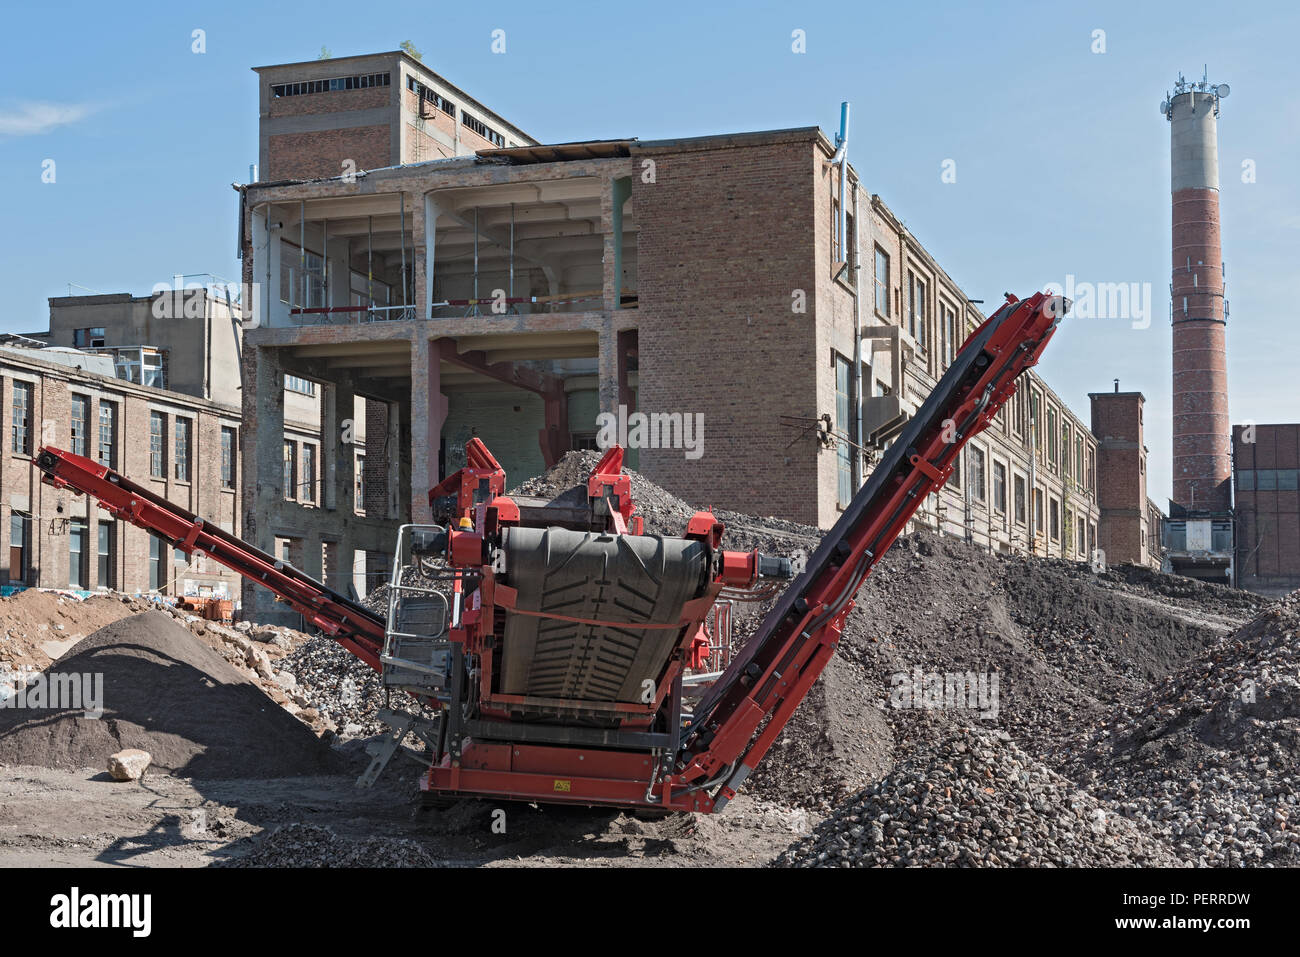 rebuilding and partial demolition of an old former paper mill. - Stock Image